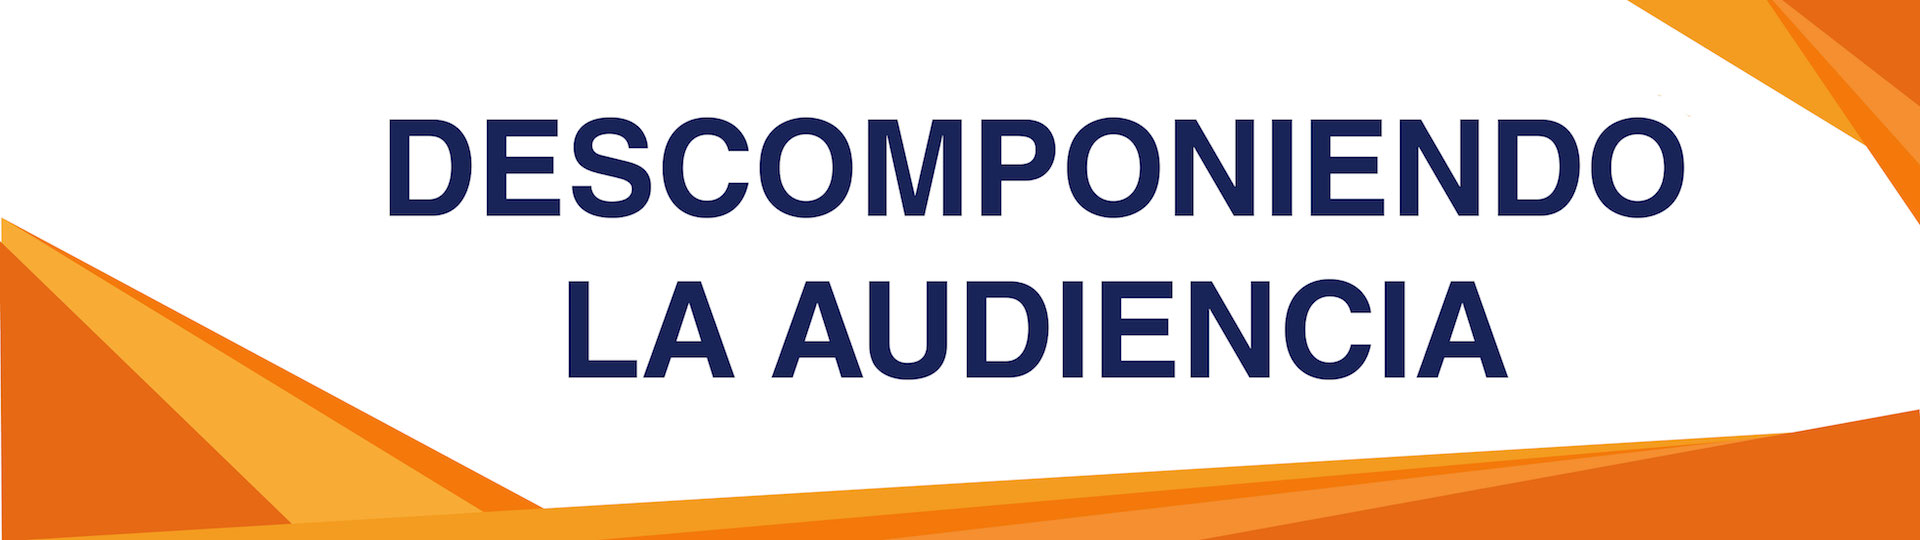 Descomponiendo-la-audiencia